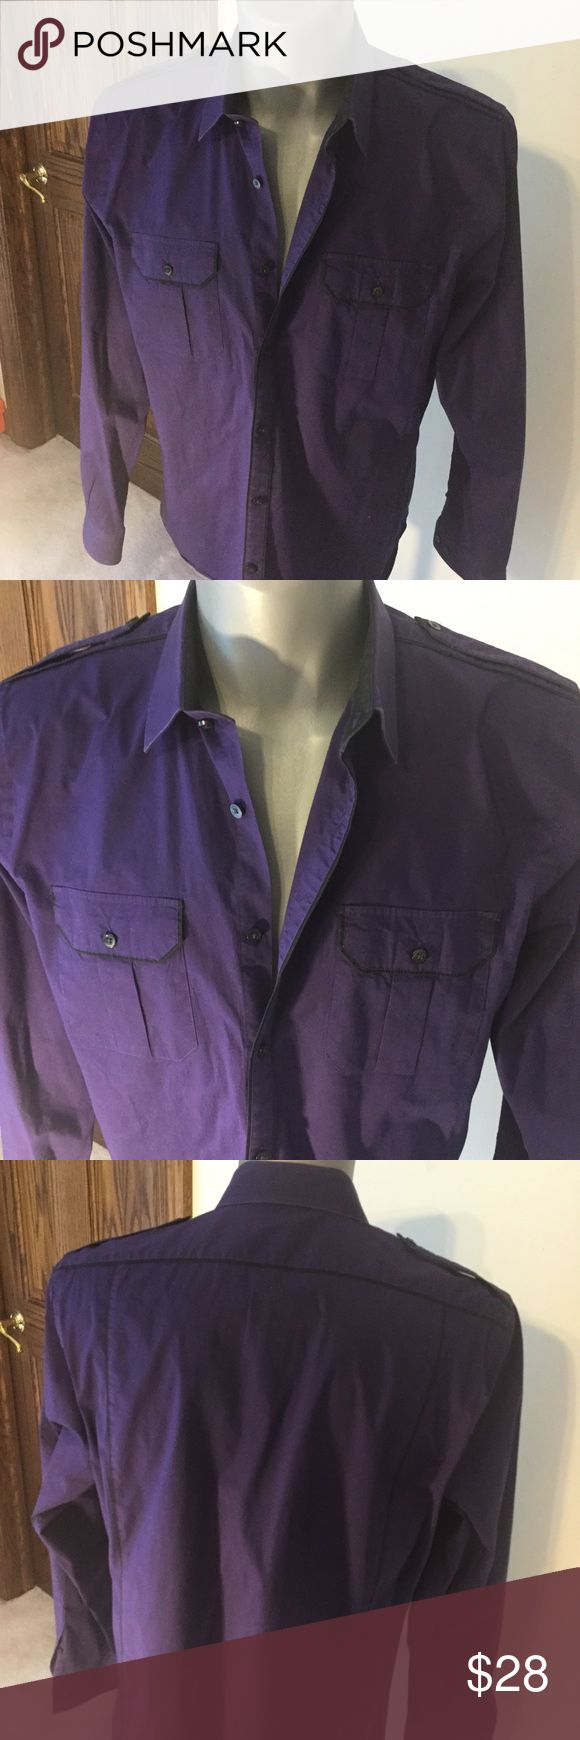 Men's Slim fit Express MK2 Men's Slim fit Express MK2 Purple with black trim Two buttoned pockets on front  XL - 17-17.5 - sharpie marker on inside of bottom from dry cleaner Express Shirts Casual Button Down Shirts